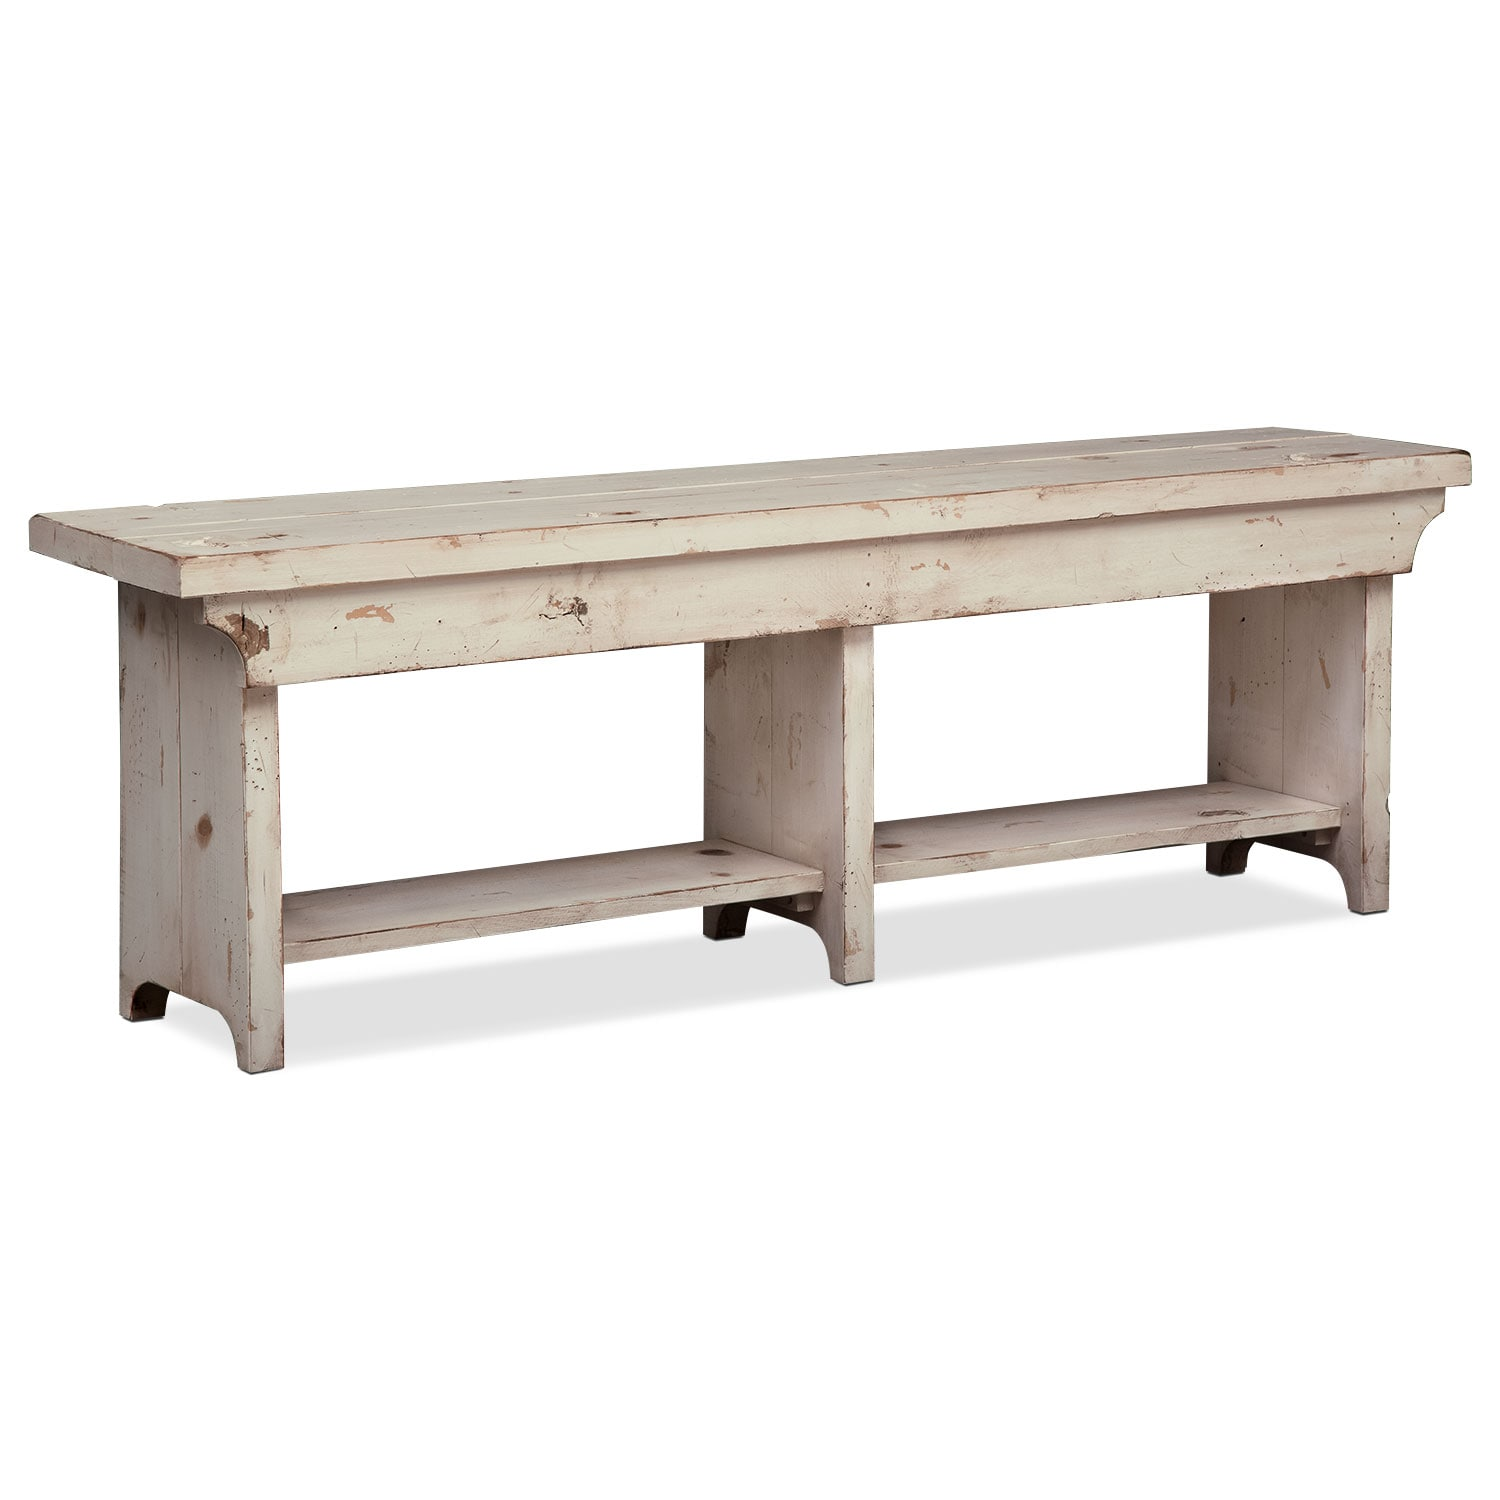 Bedroom Furniture - Roger Bench - White